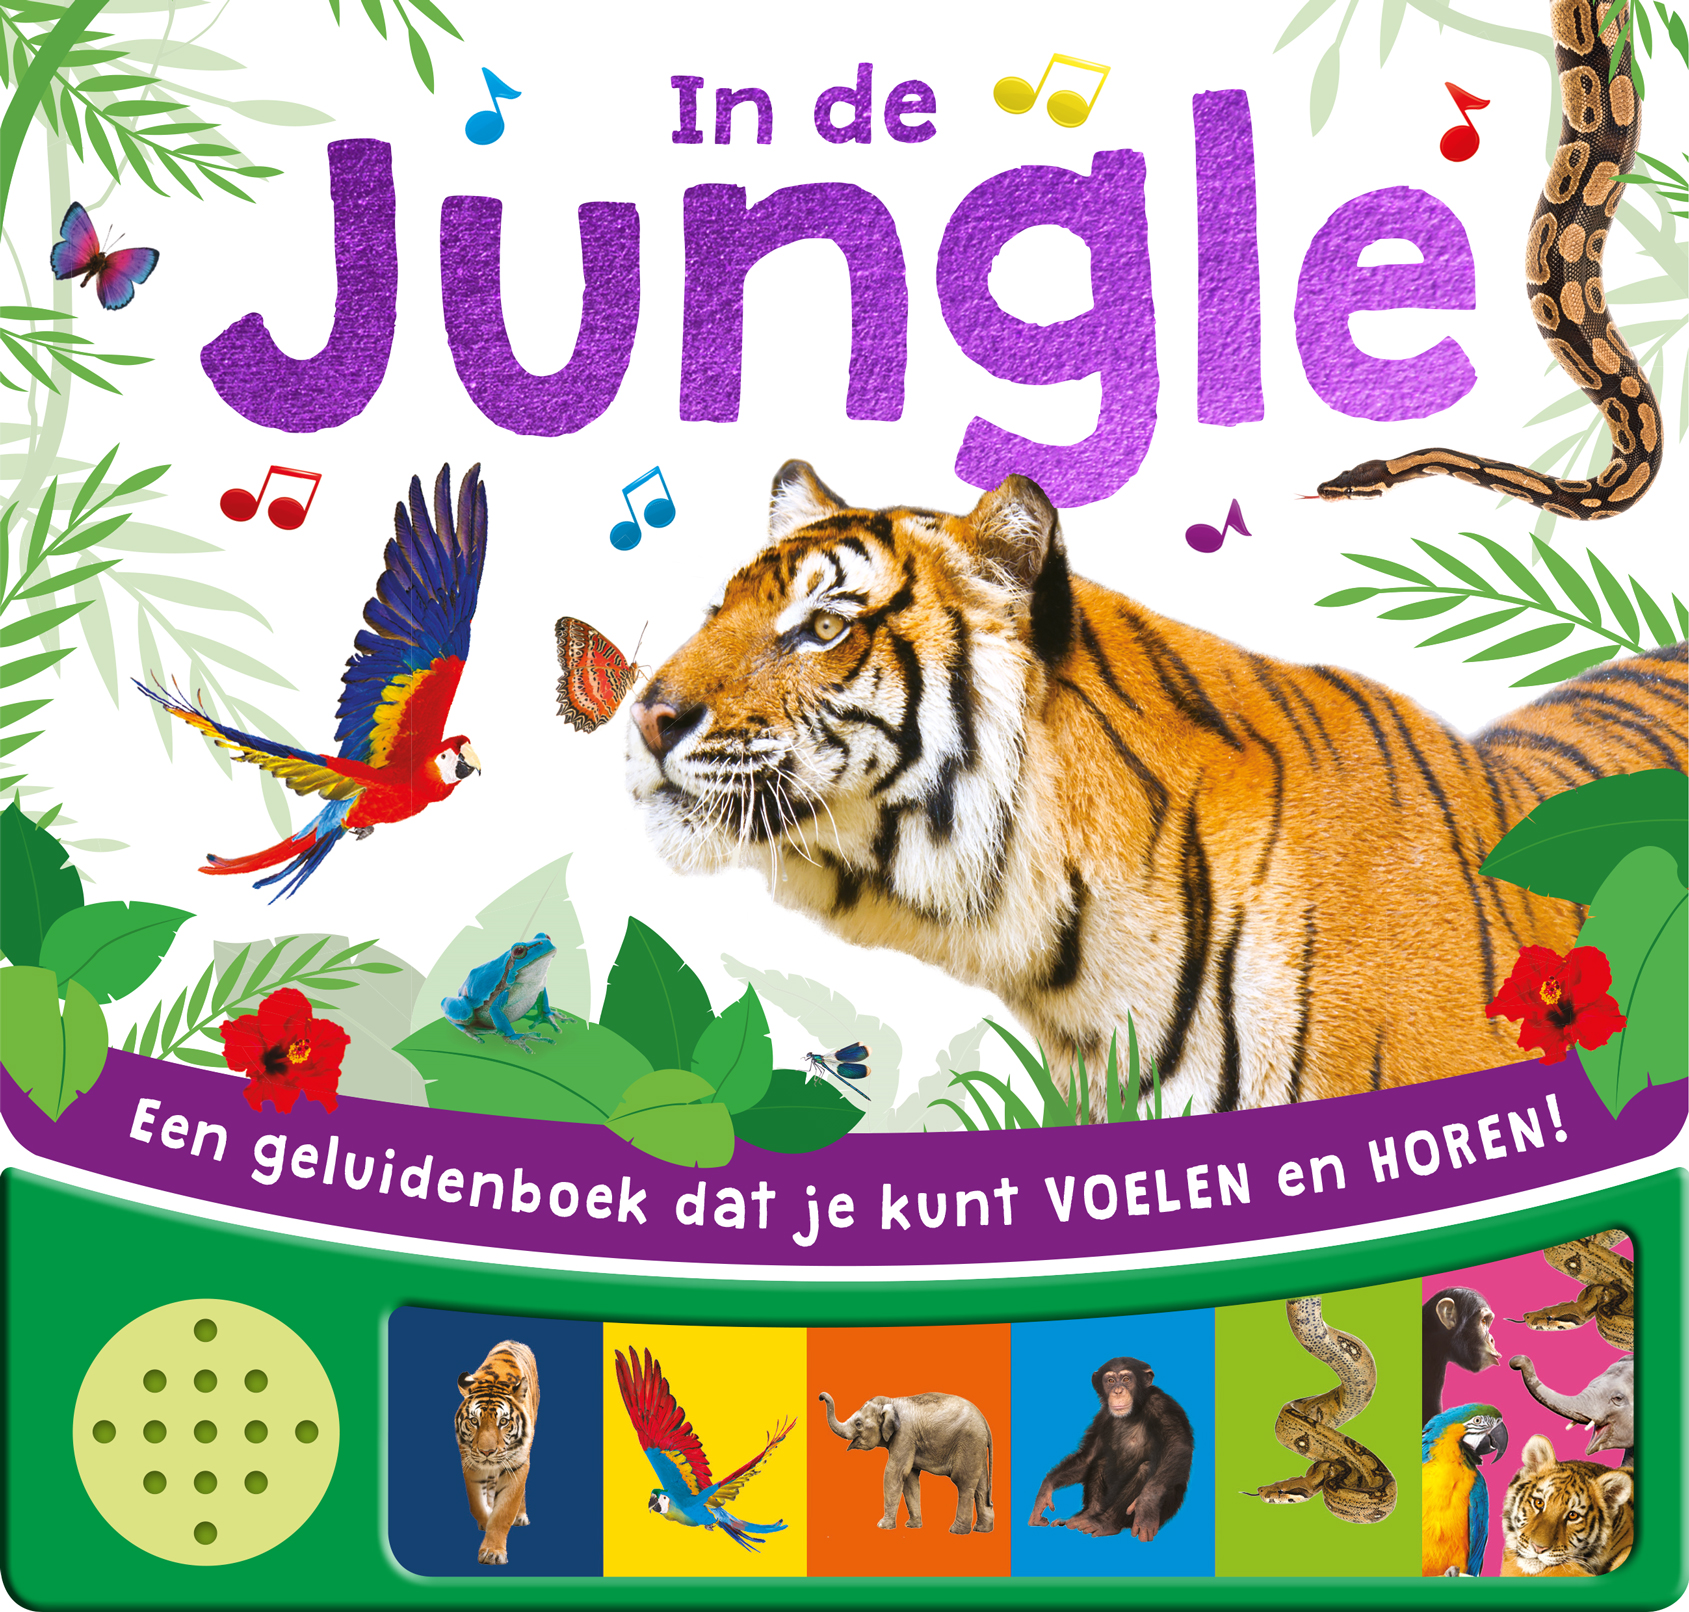 In the Jungle - voel geluidenboek